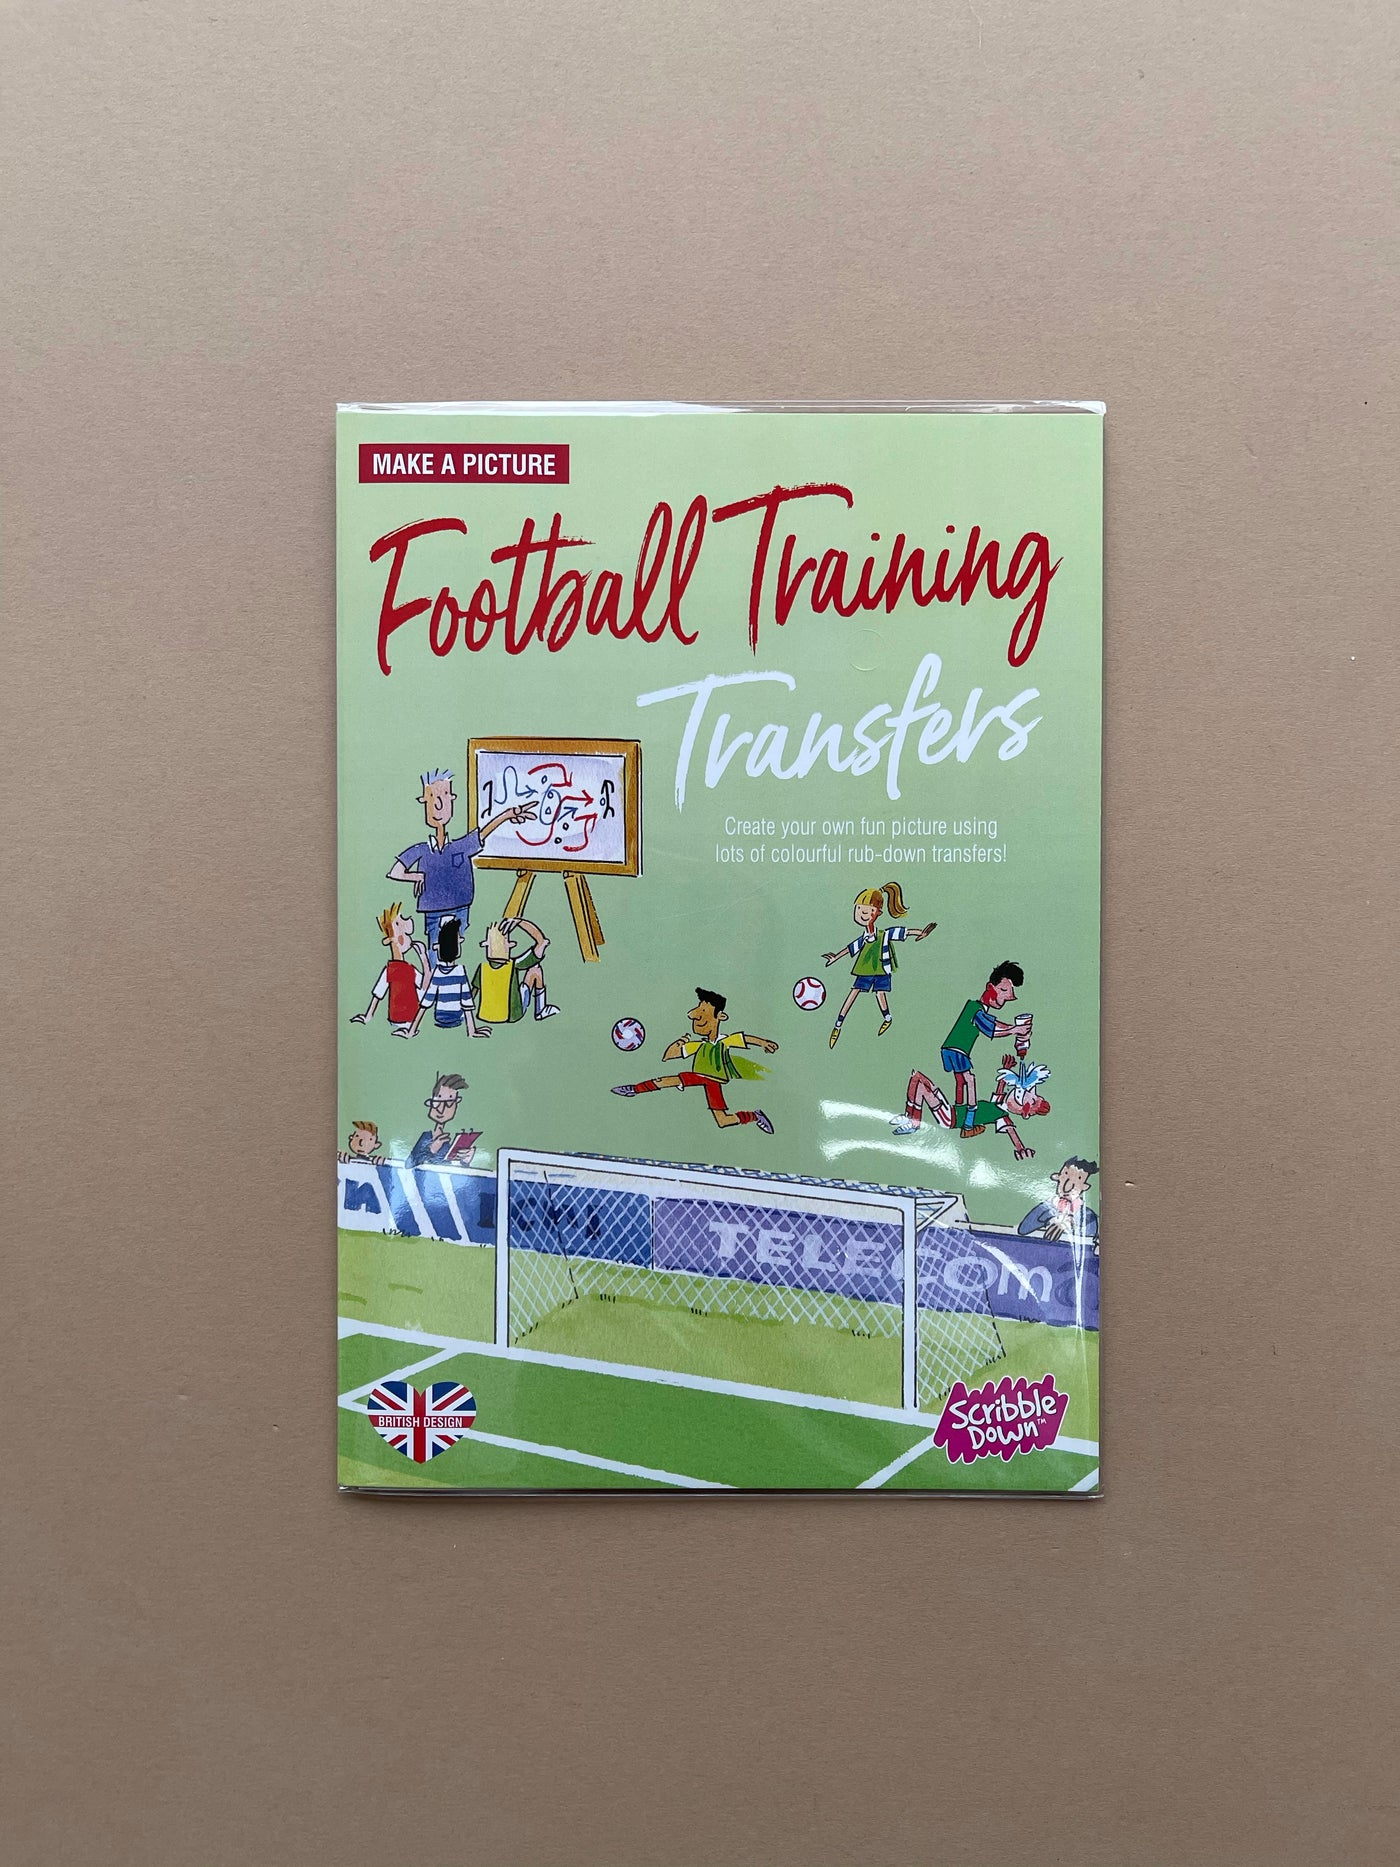 Scribble Down Football Training Transfers